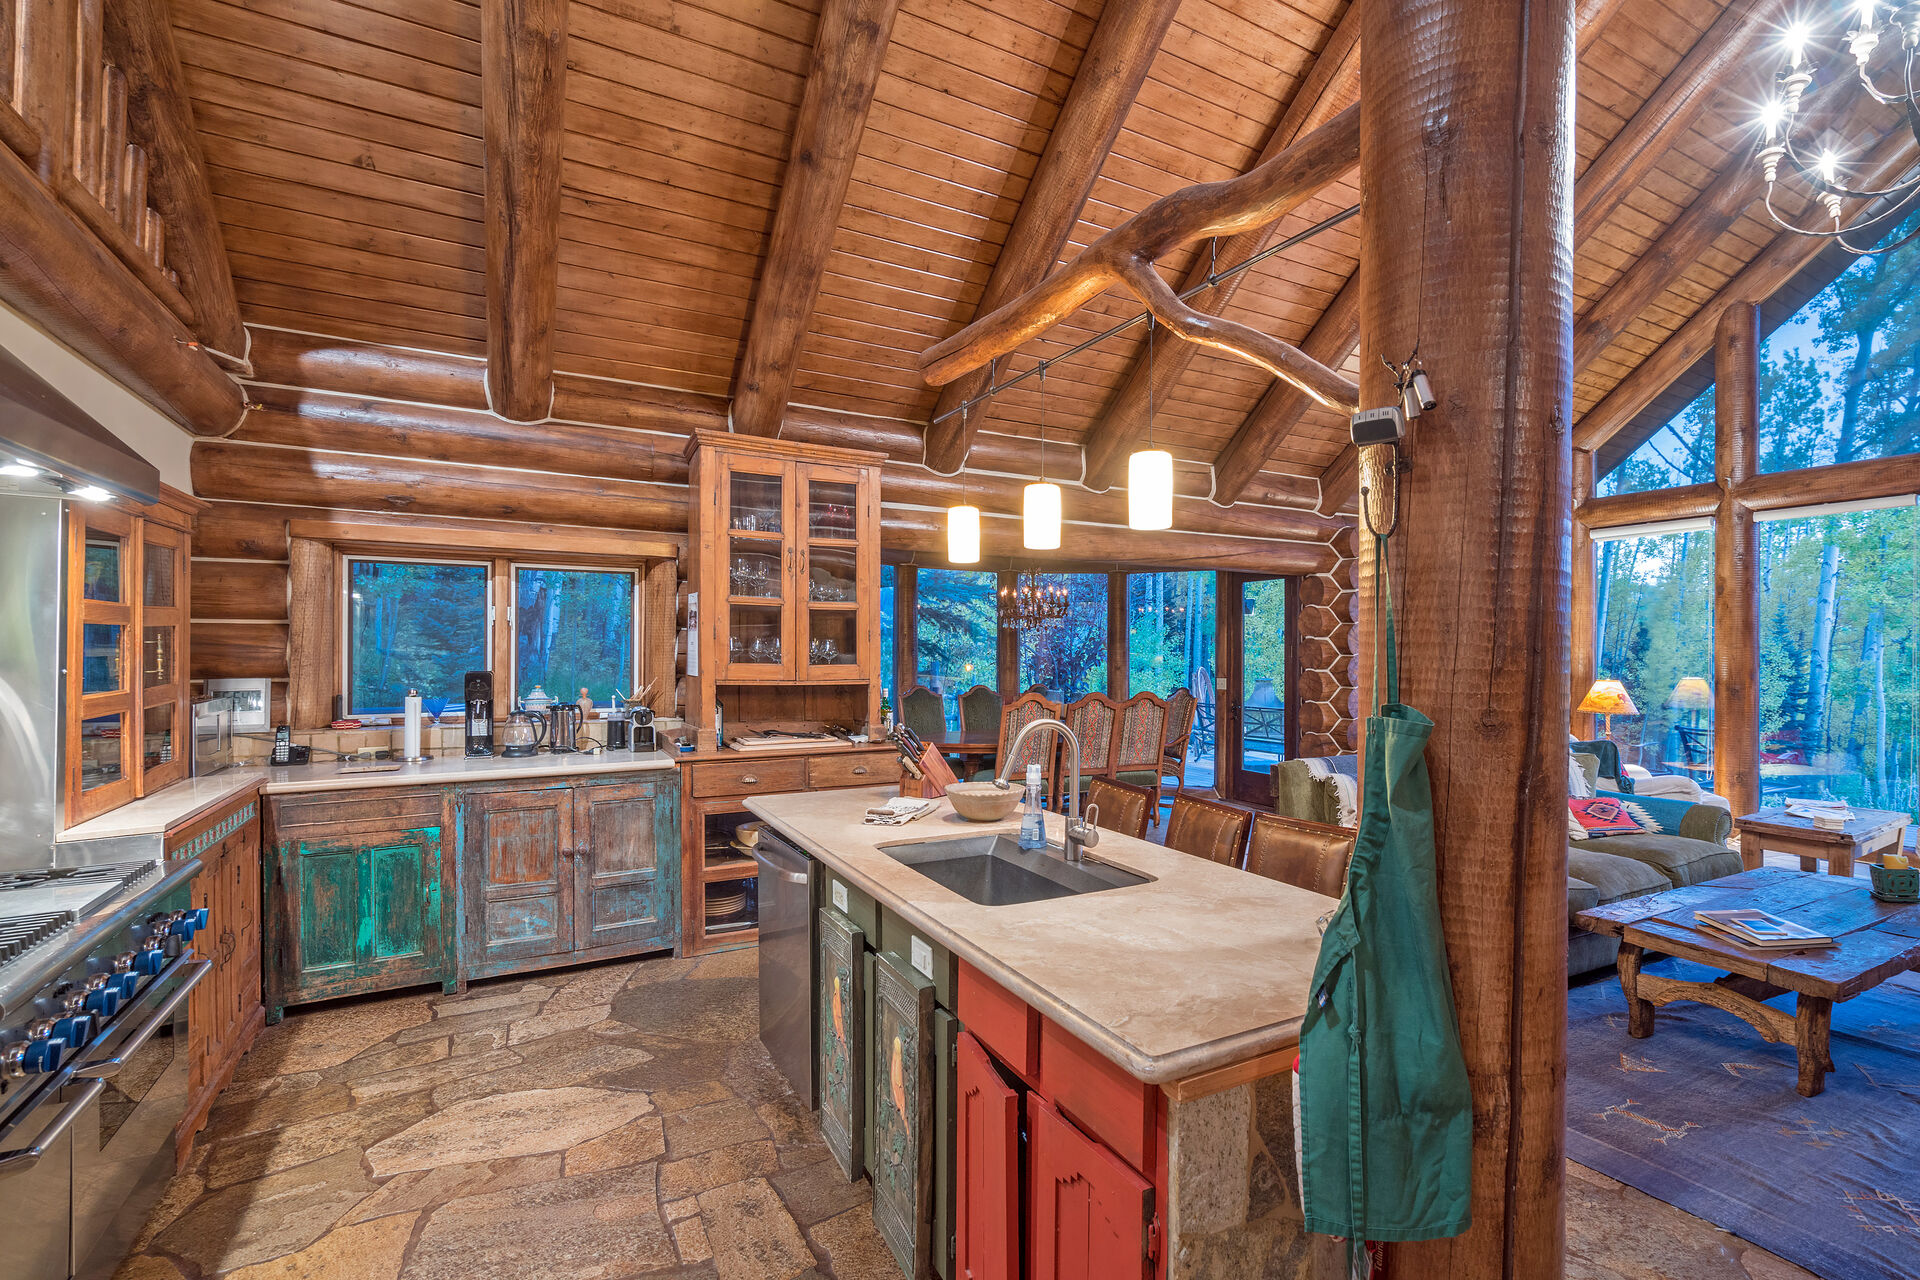 Full Kitchen at Ski Ranches Cabin with Views of the Forest